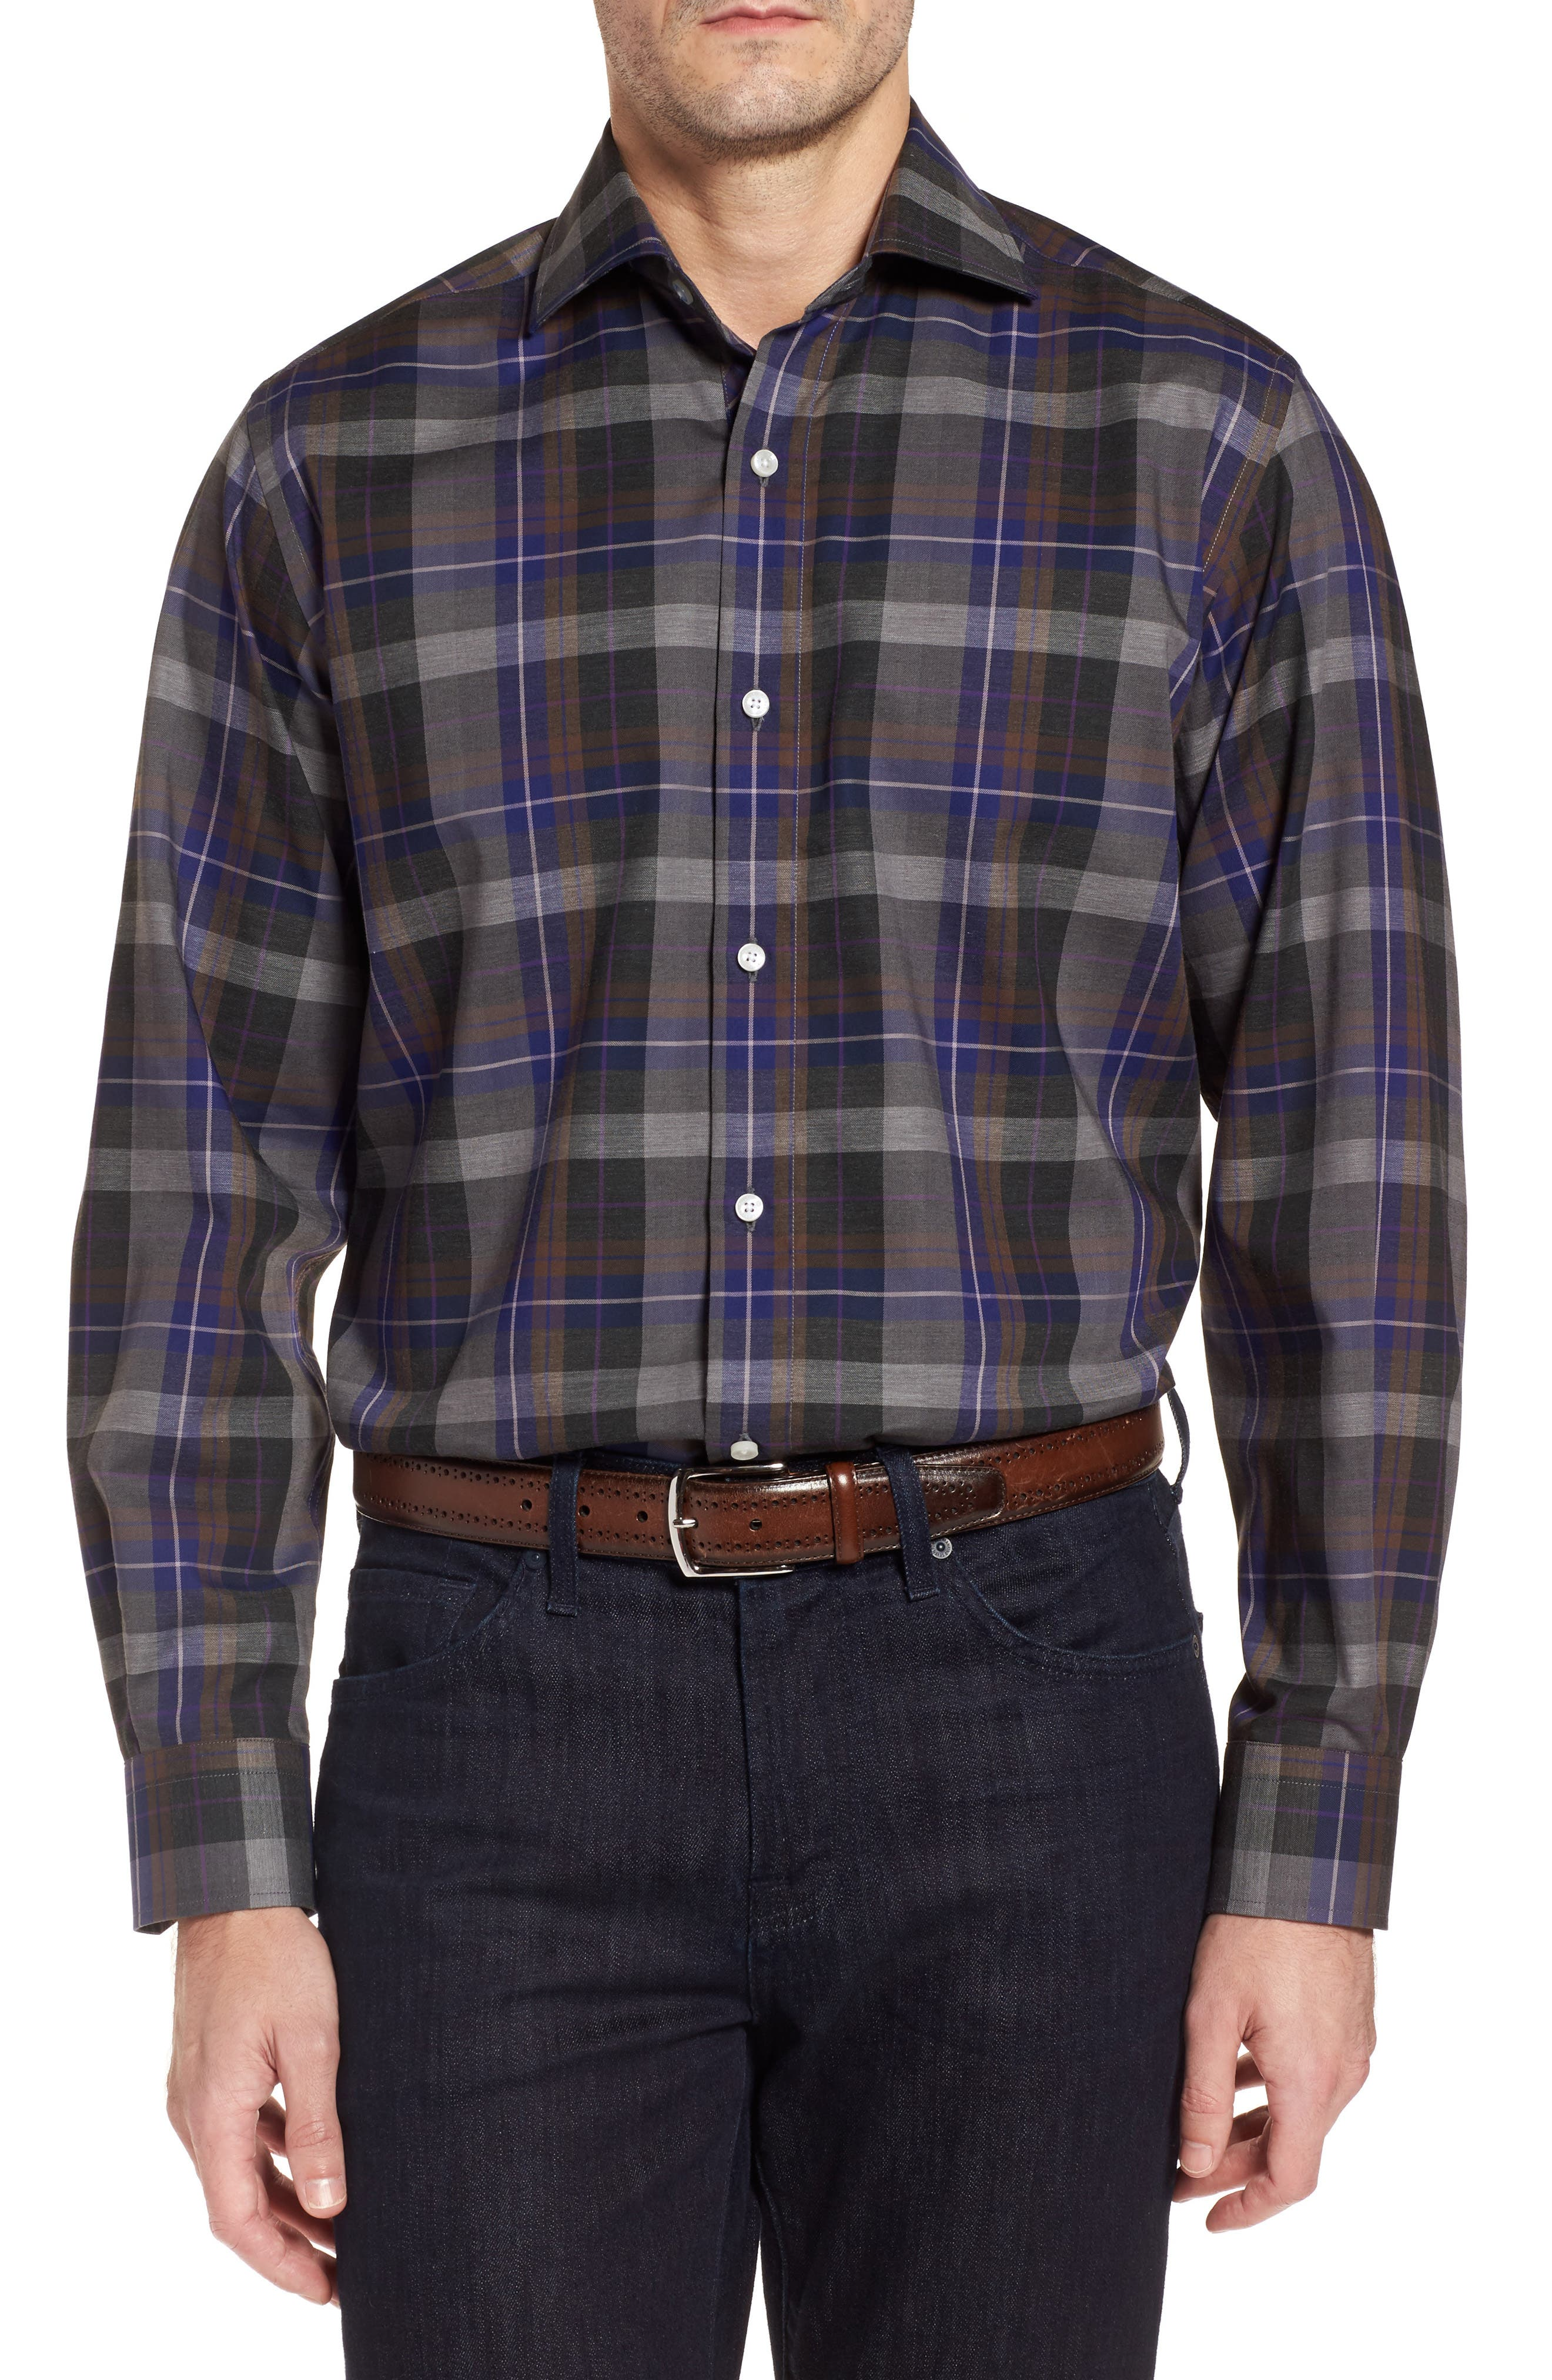 Alternate Image 1 Selected - TailorByrd Cullen Plaid Twill Sport Shirt